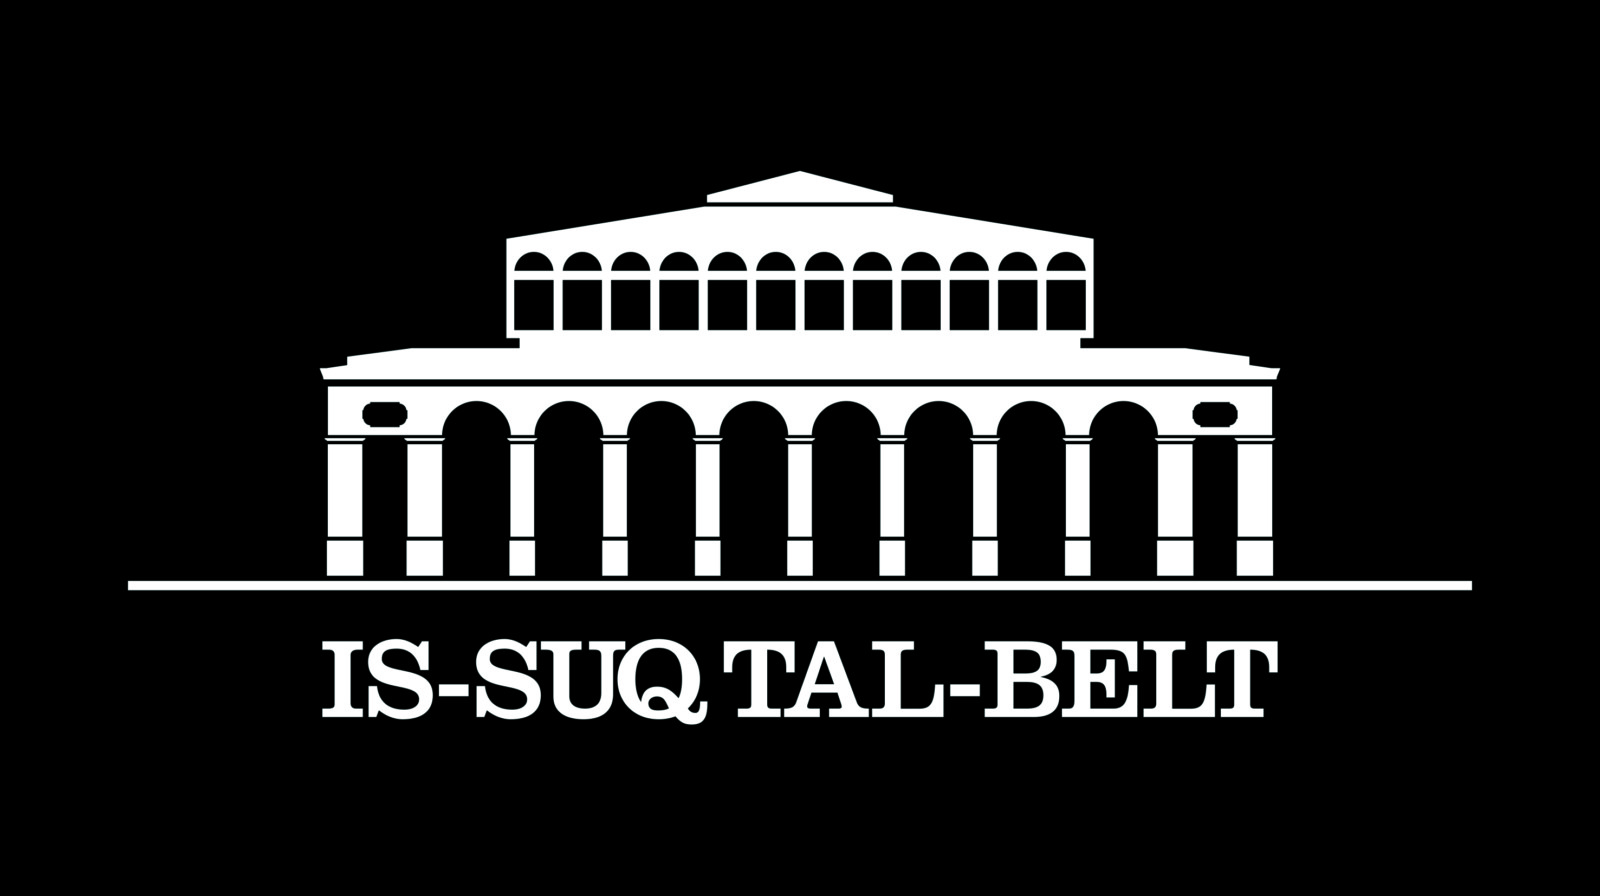 is-suq-logo